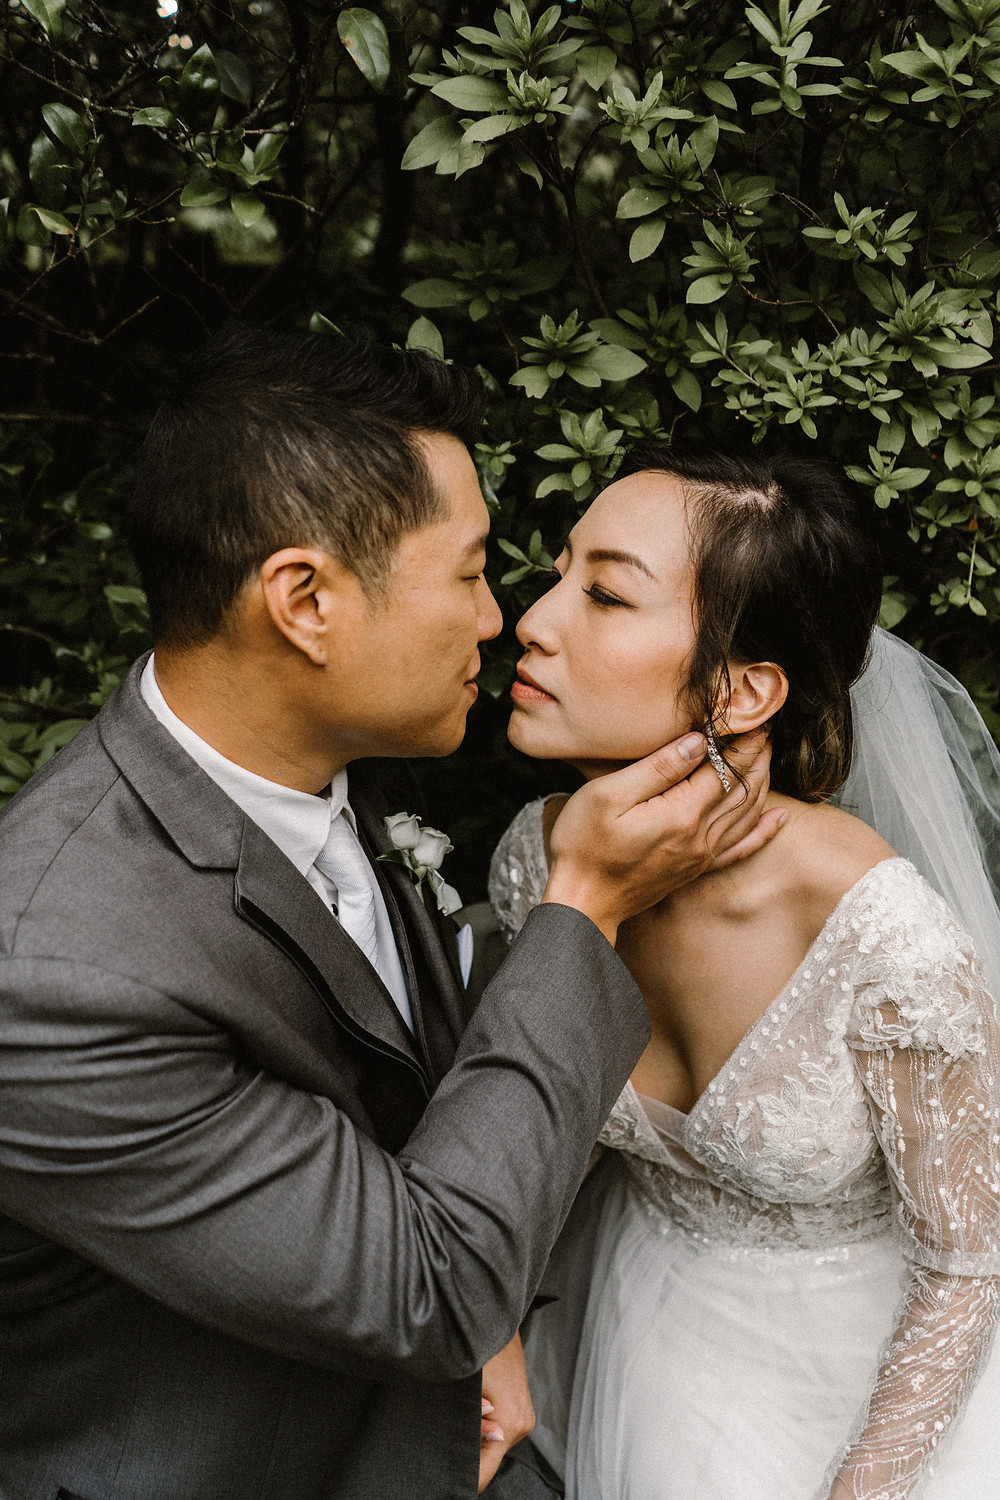 asian couple kissing in a garden. Bride and Groom